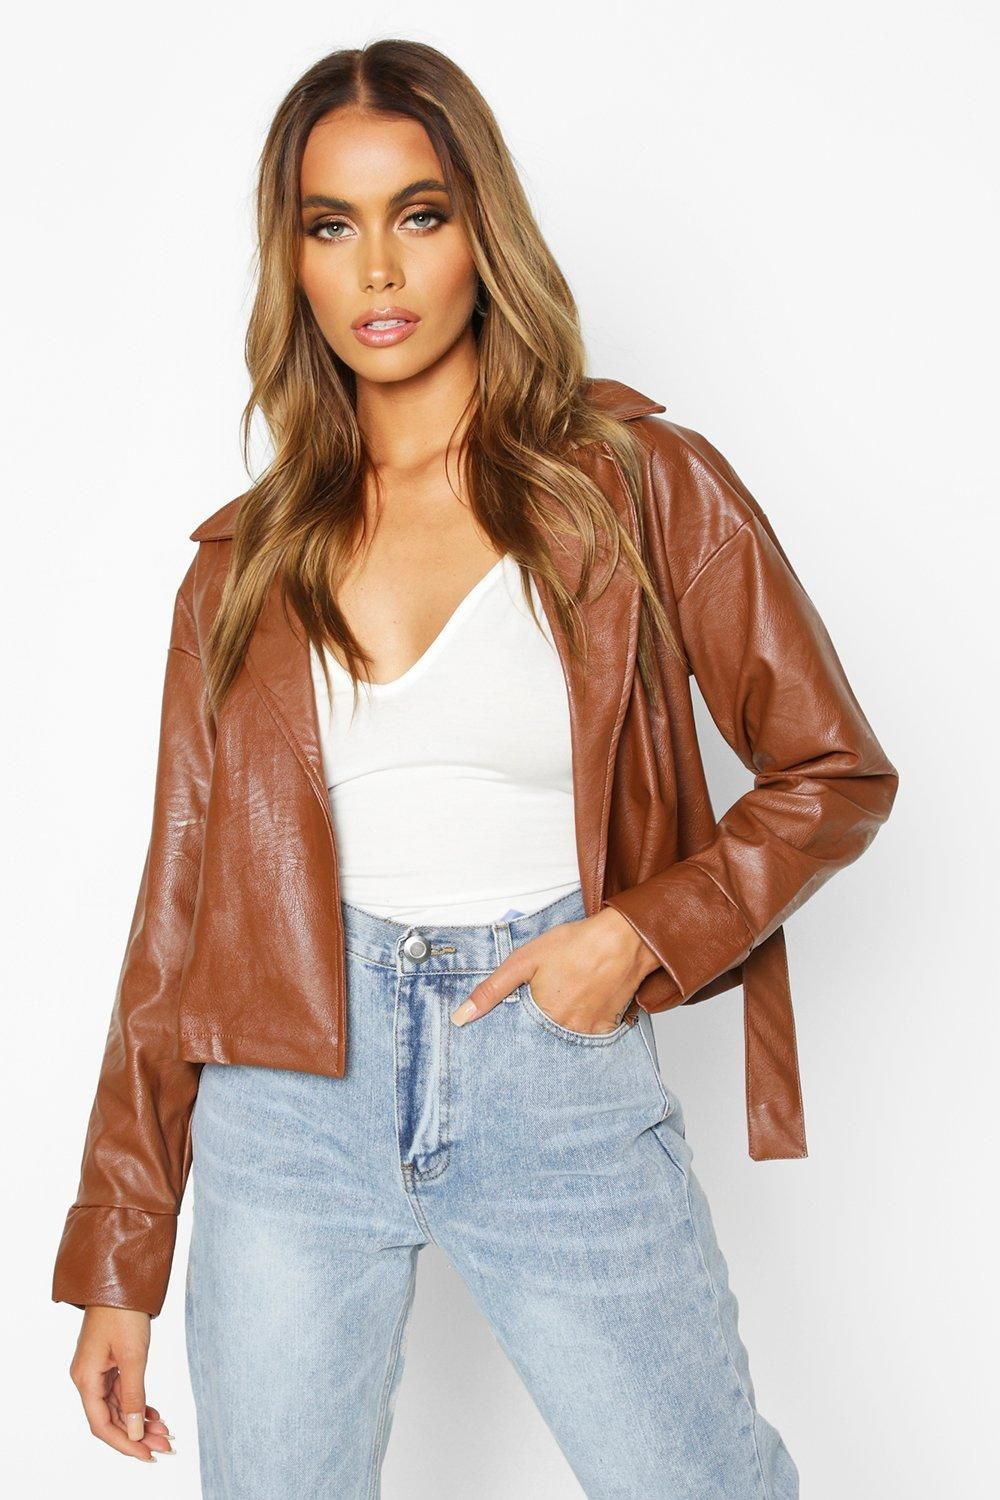 Covered Buckle Belted Faux Leather Jacket Boohoo Leather Jacket Faux Leather Jackets Brown Leather Jacket [ 1500 x 1000 Pixel ]